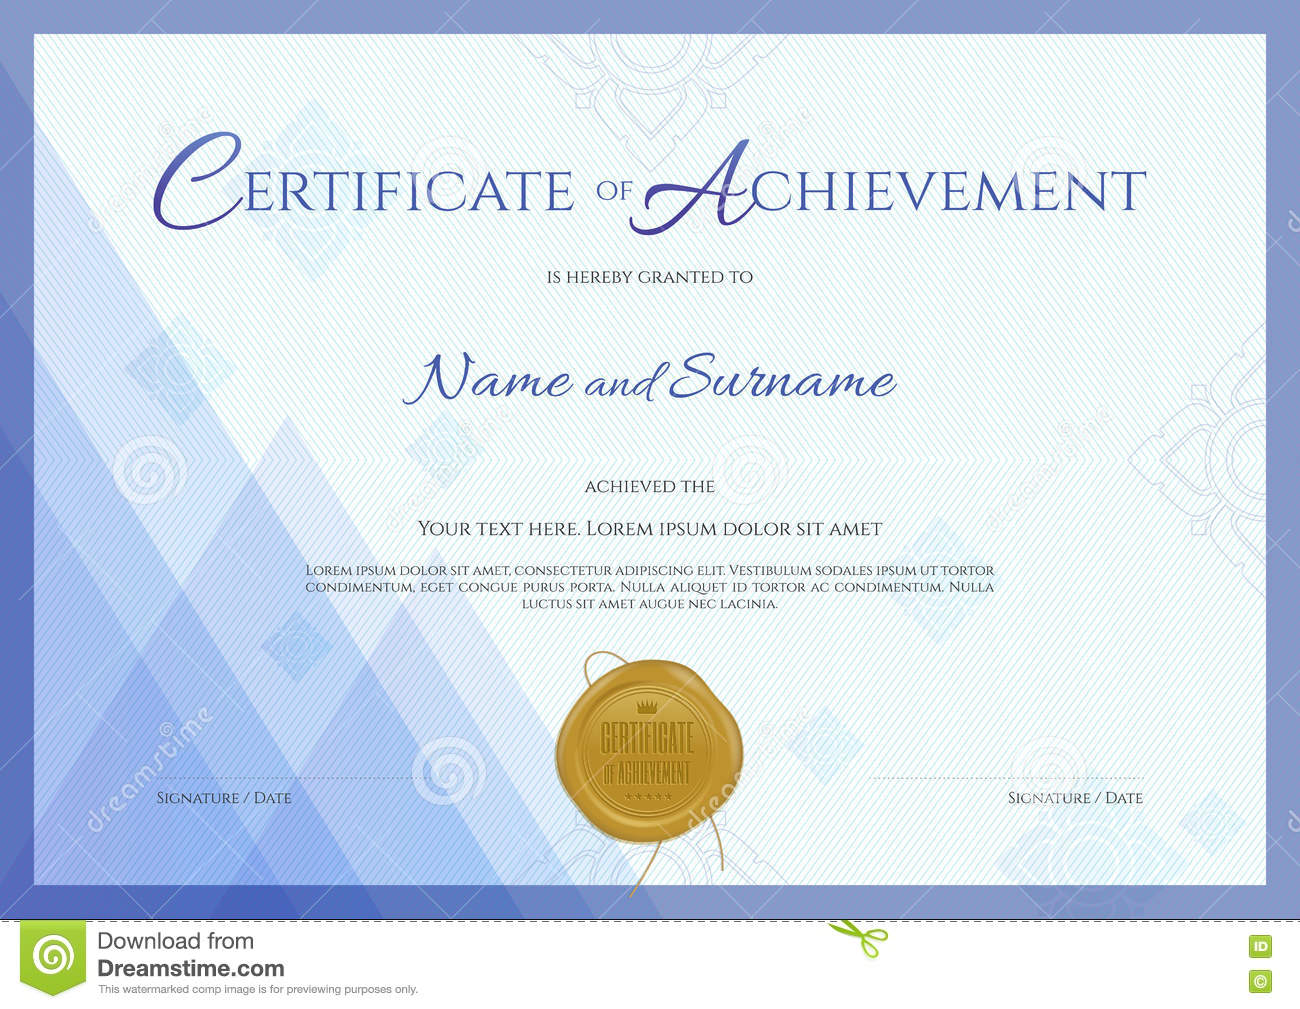 Certificate Of Achievement Template With Blue Theme Background  Certificate Achievement Template